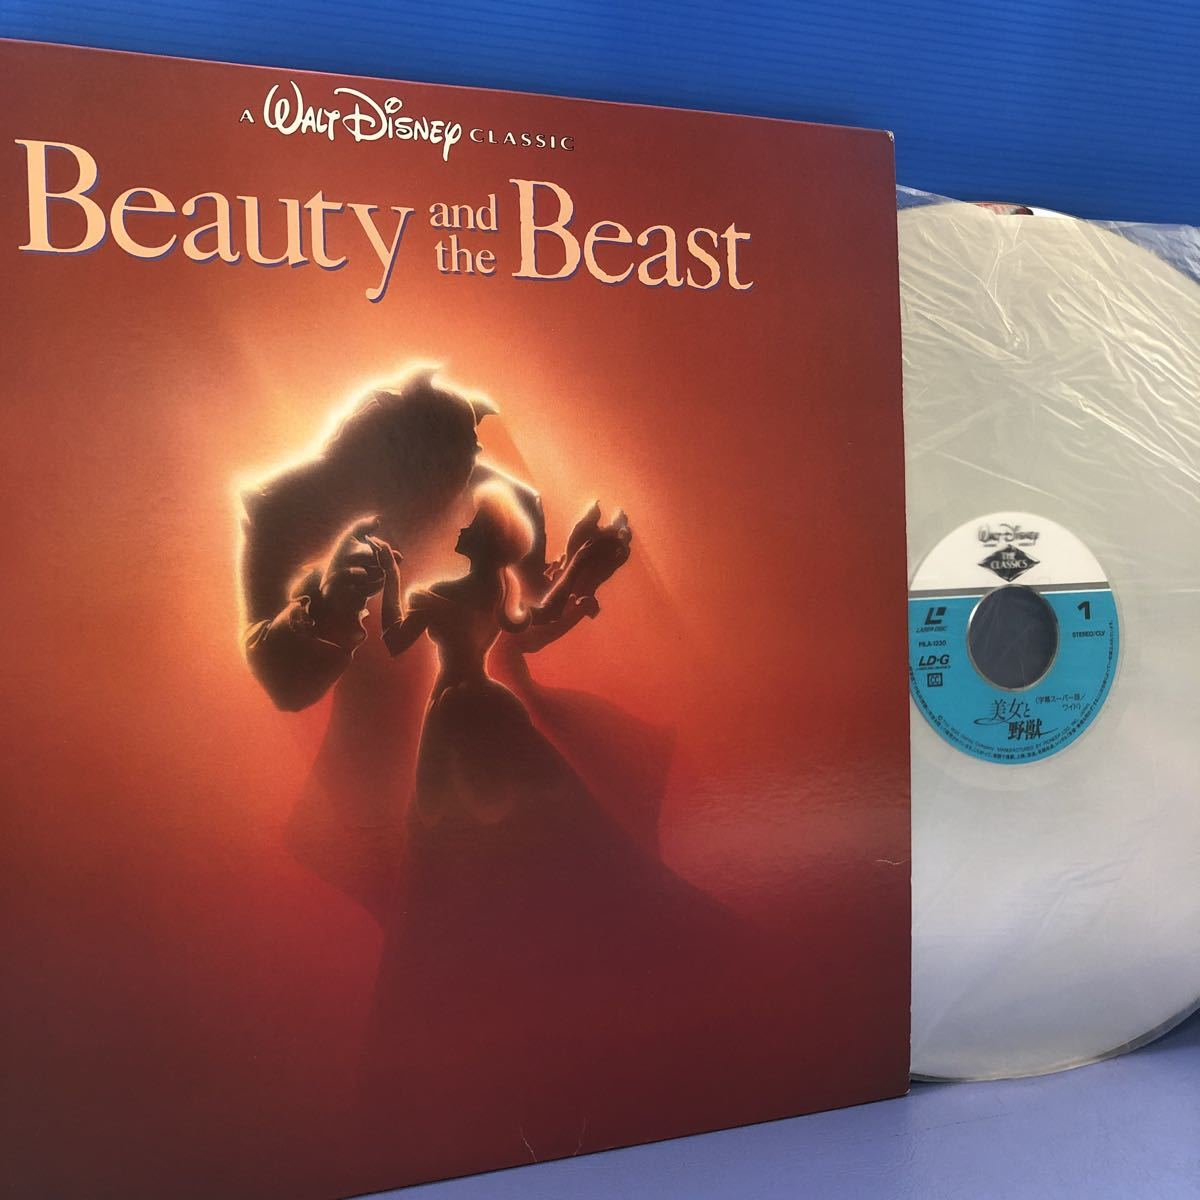 Beauty and the Beast Disney Beauty and the Best Shipping LD 5 points or more successful bid free n